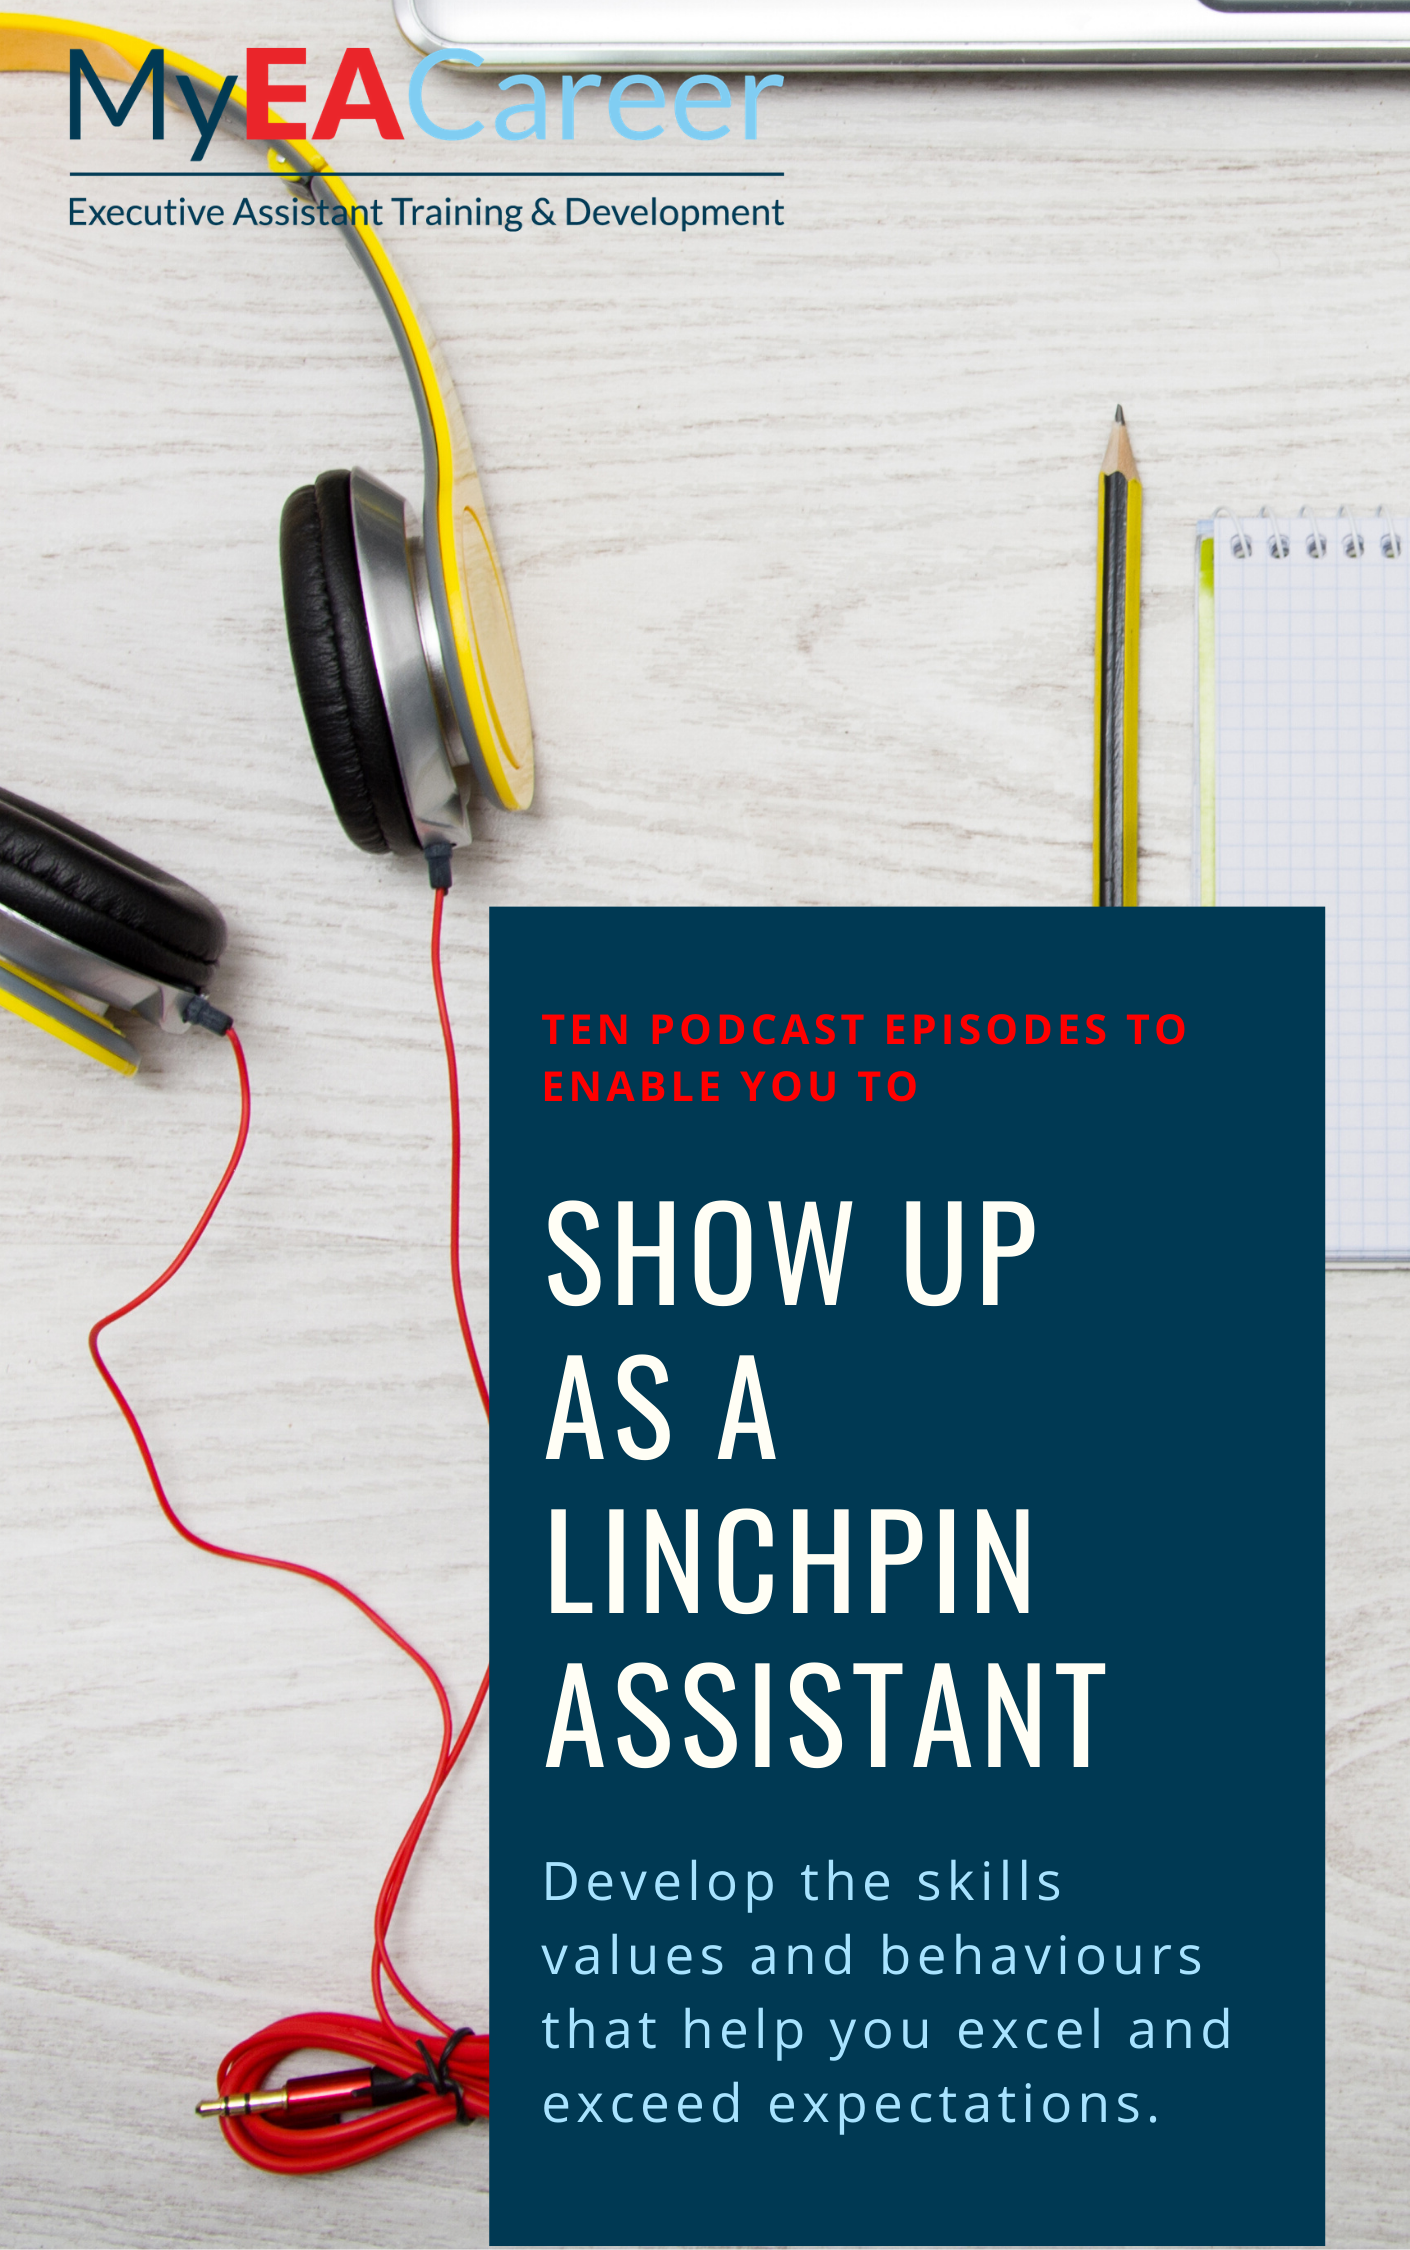 Ten Being Indispensable Podcast Episodes To Help You Show Up As A Linchpin Assistant